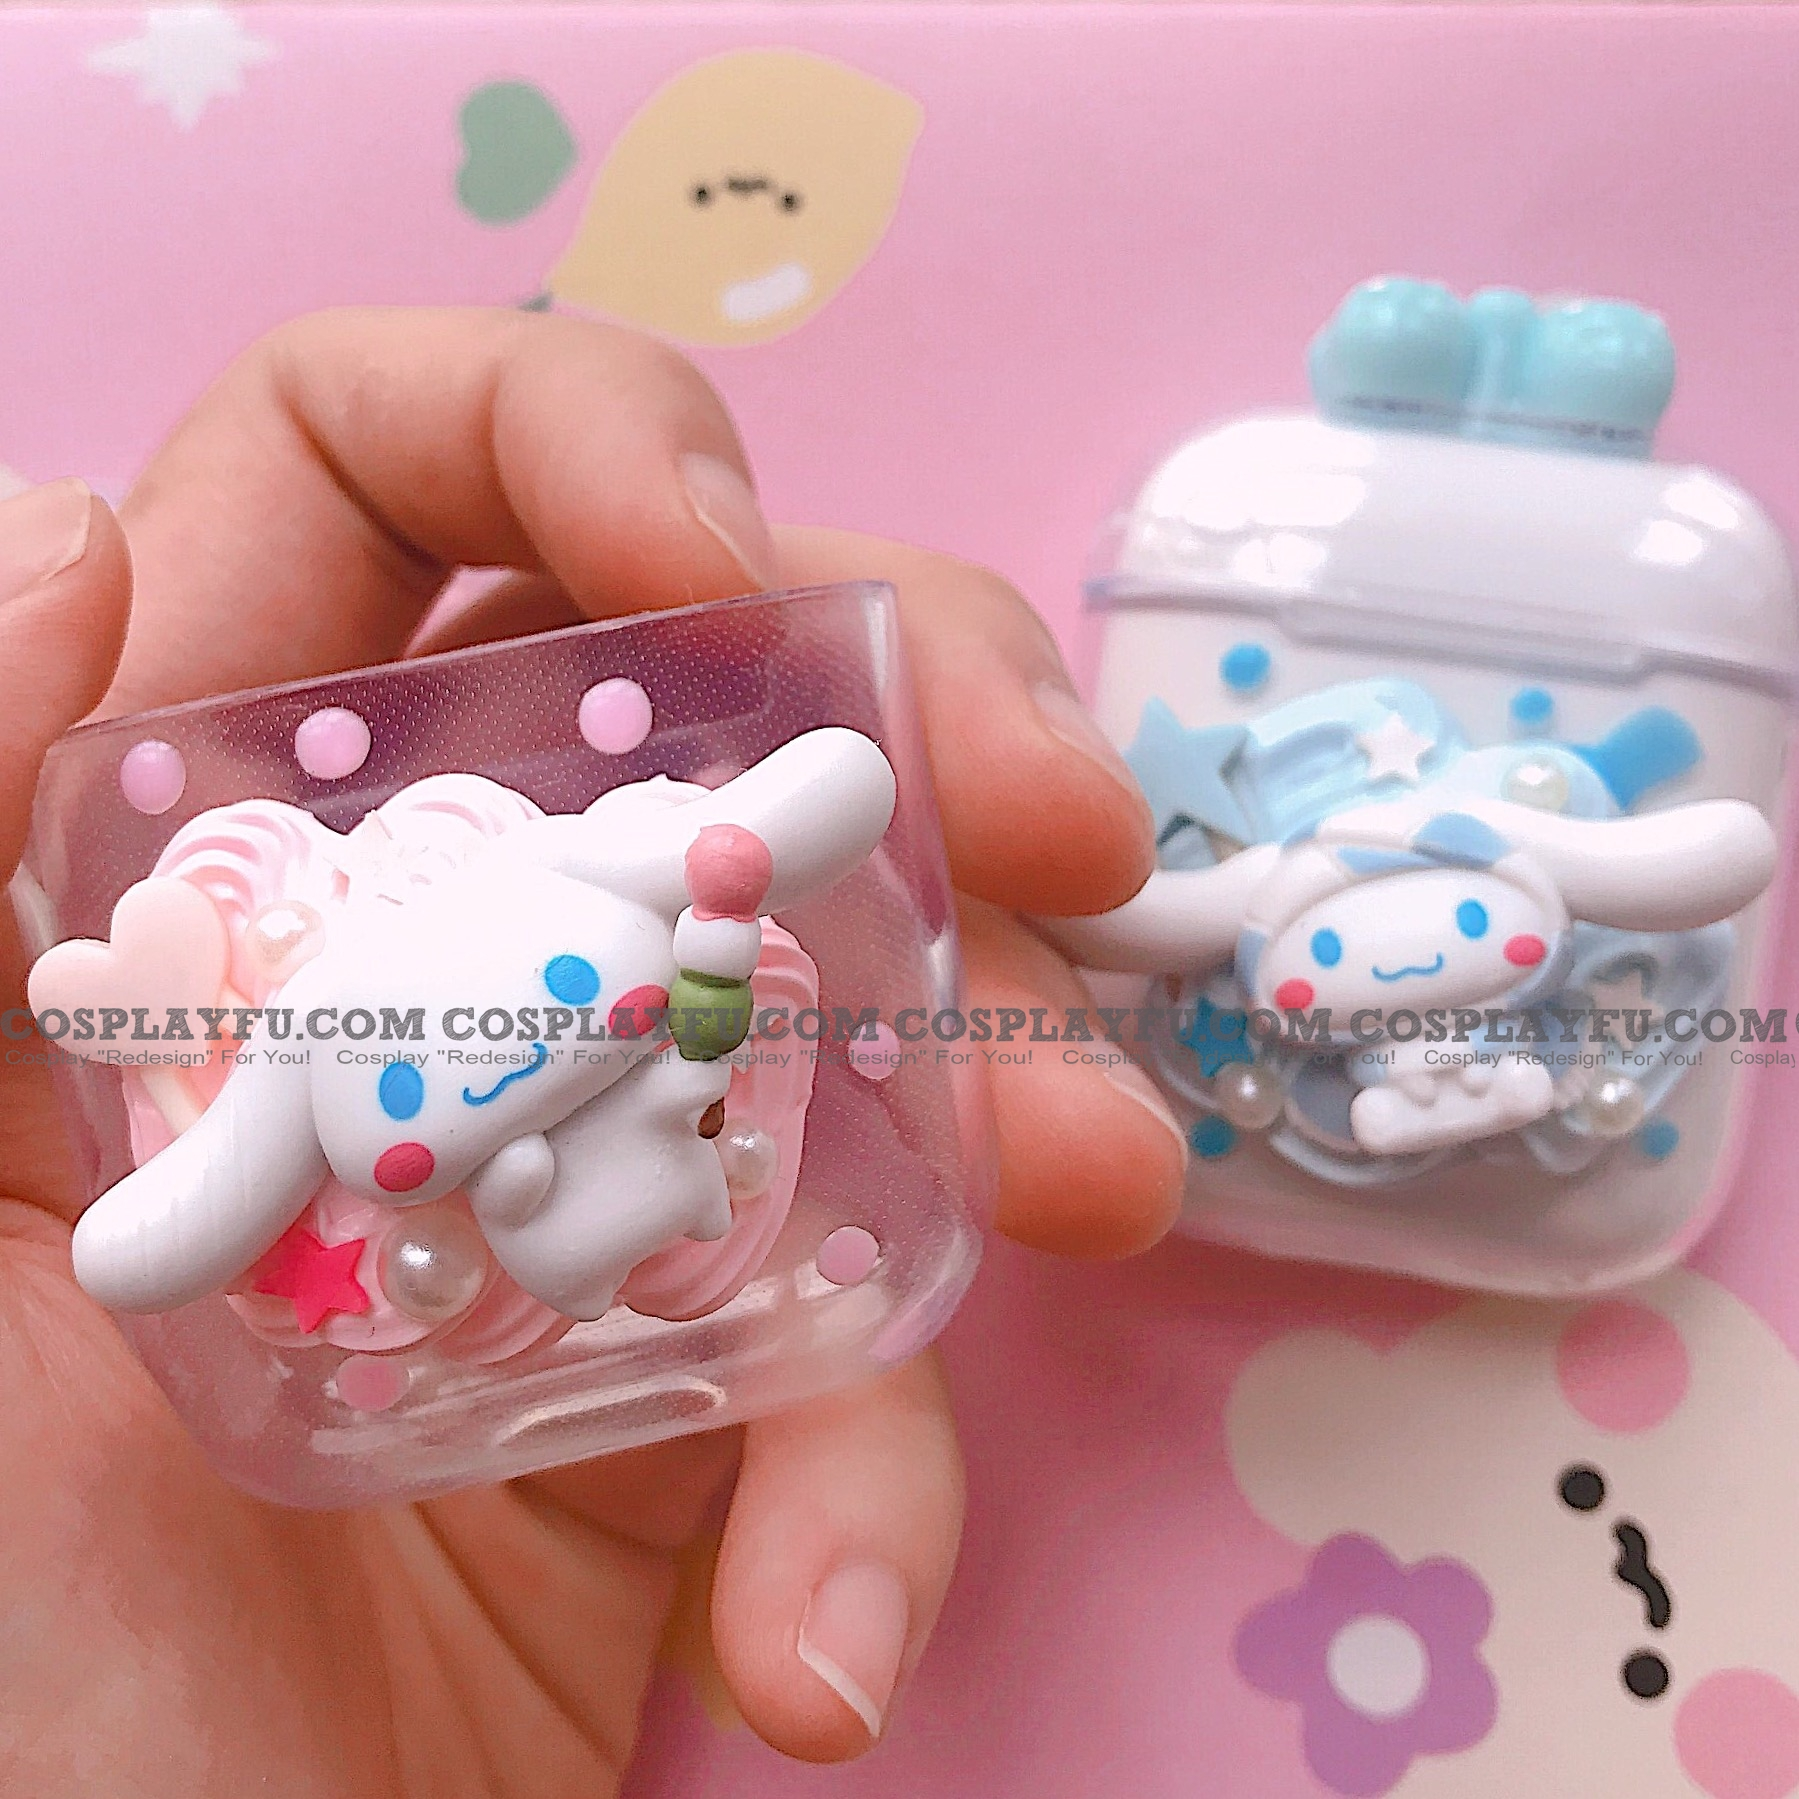 Cinnamoroll 3D Transparent Airpod Case | Silicone Case for Apple AirPods 1, 2, Pro Cosplay